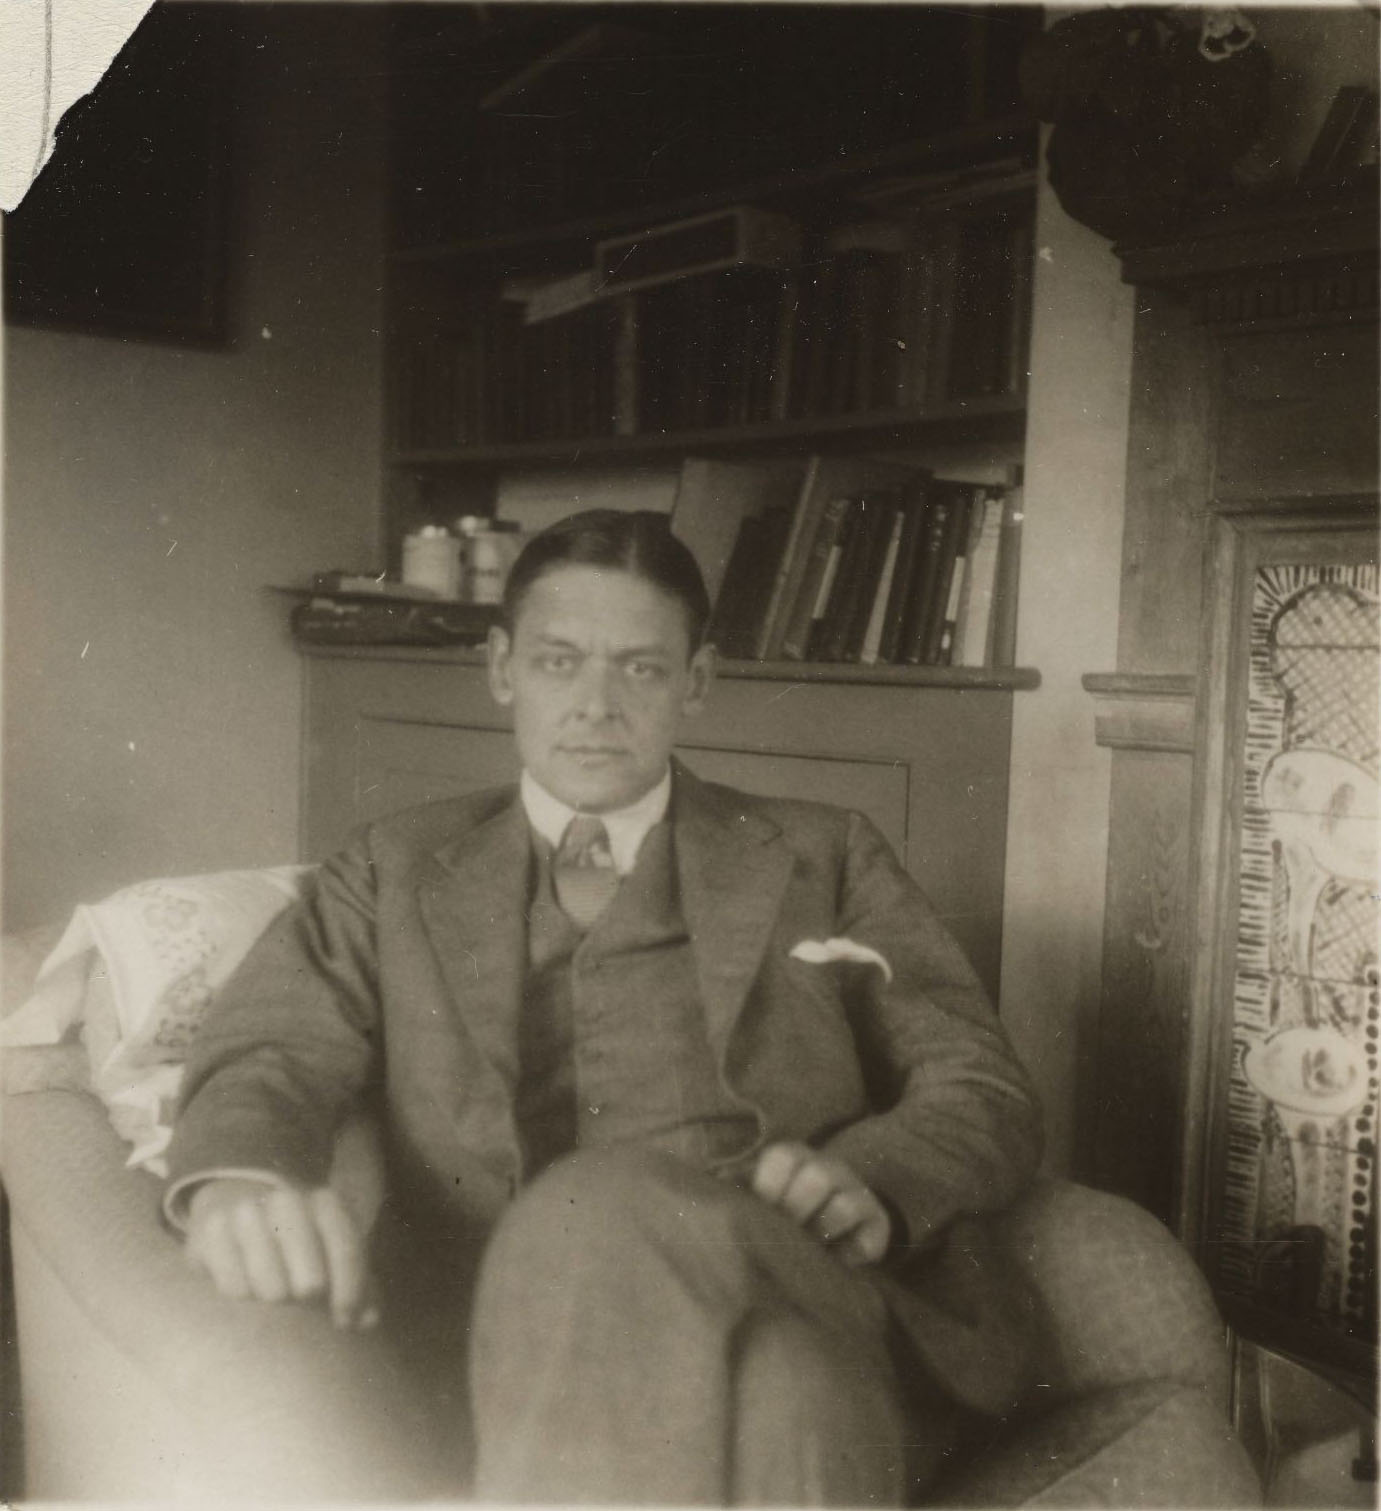 T.S. Eliot at Monk's House. MS Thr 562 (108)